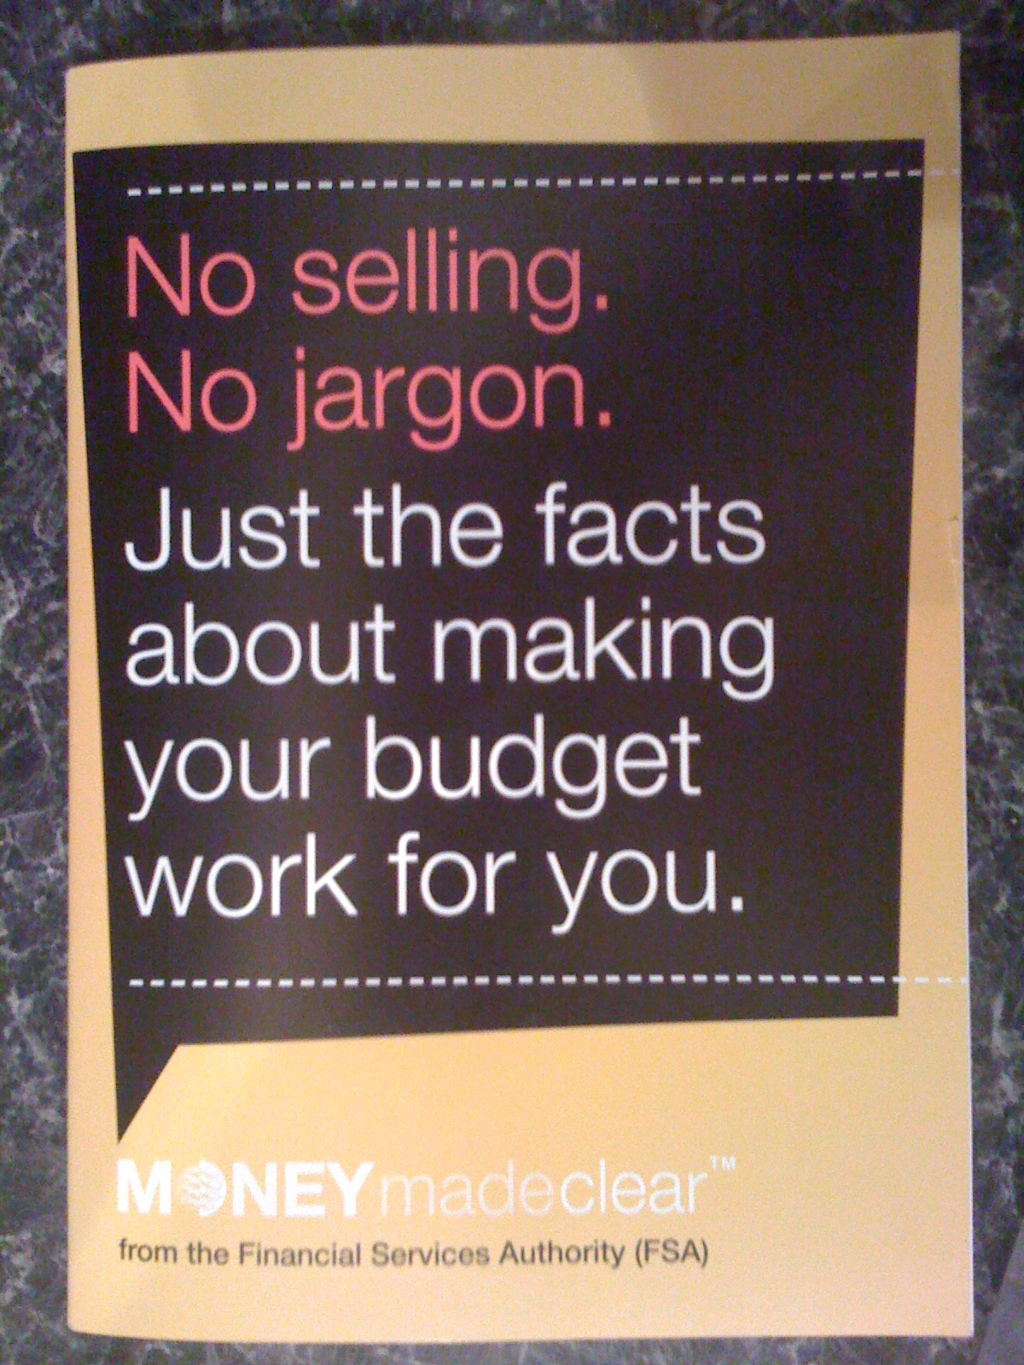 MONEYmadeclear leaflet